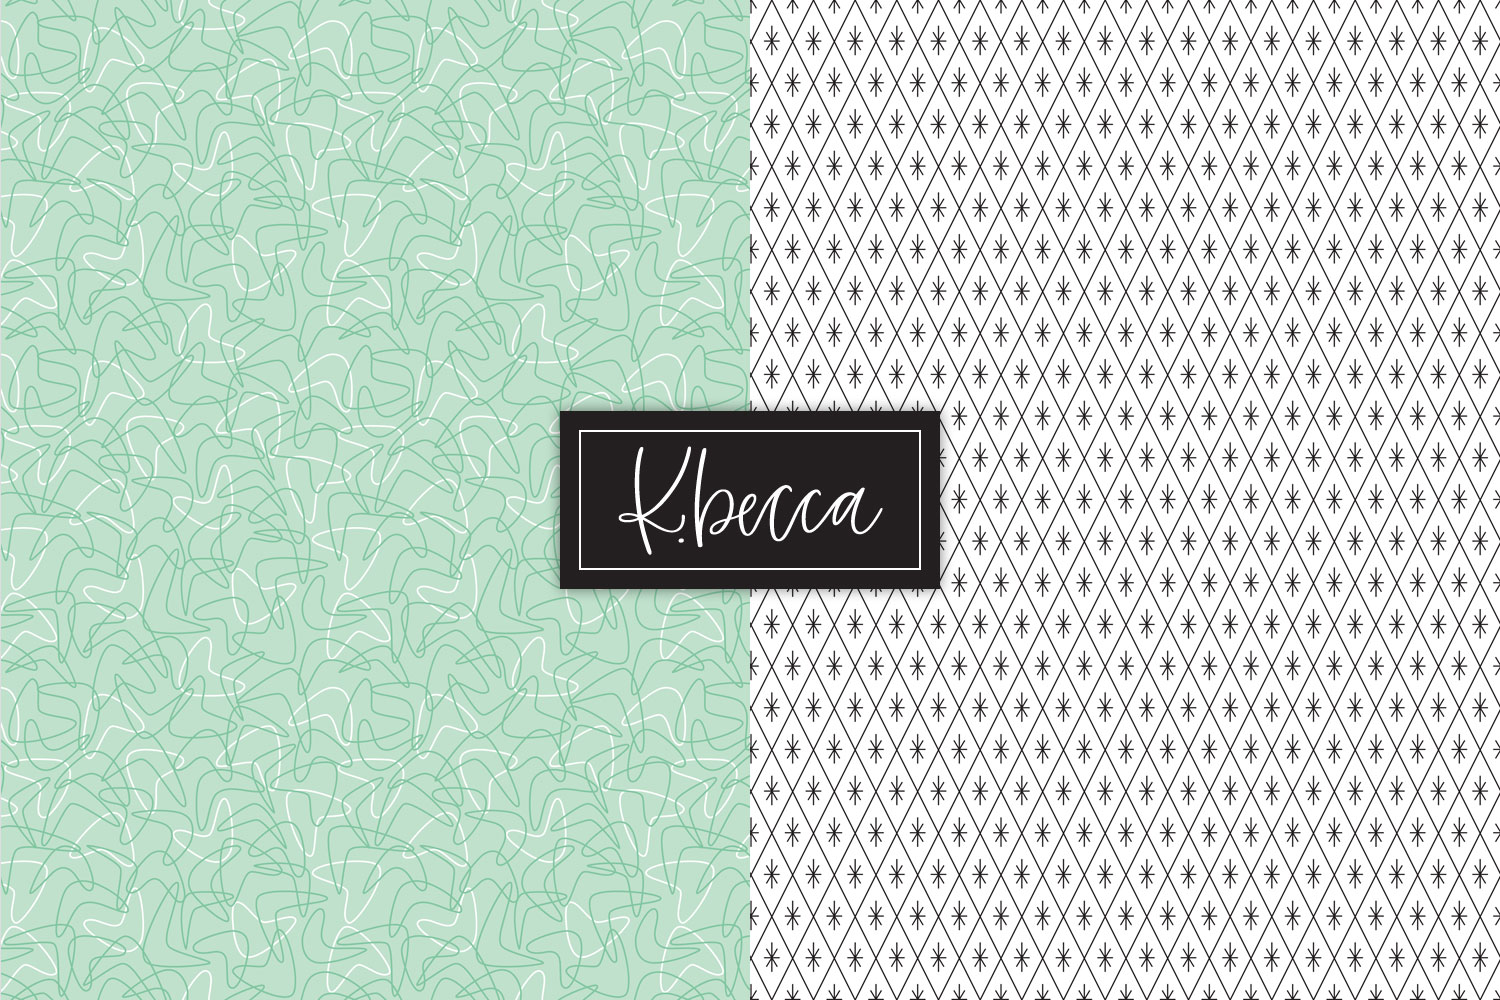 Retro 1950s Background Patterns Seamless example image 5